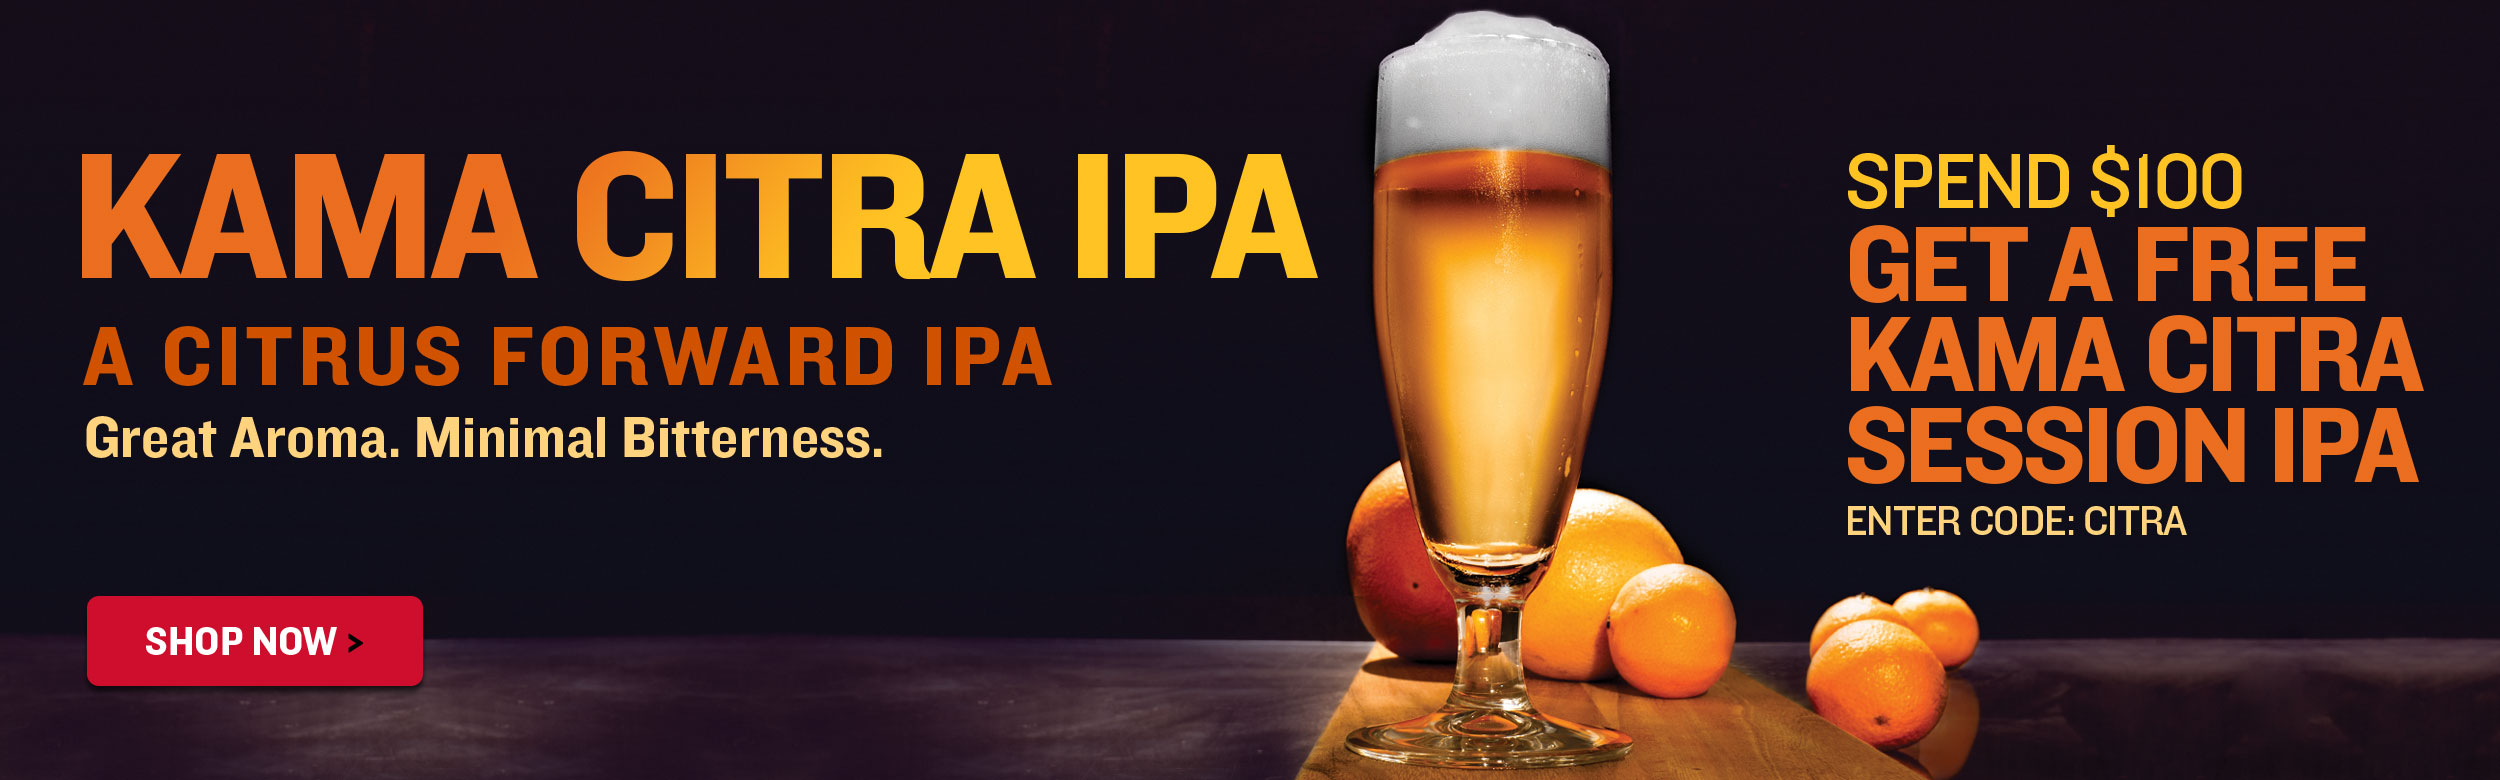 Spend $100, Get a Free Kama Citra IPA